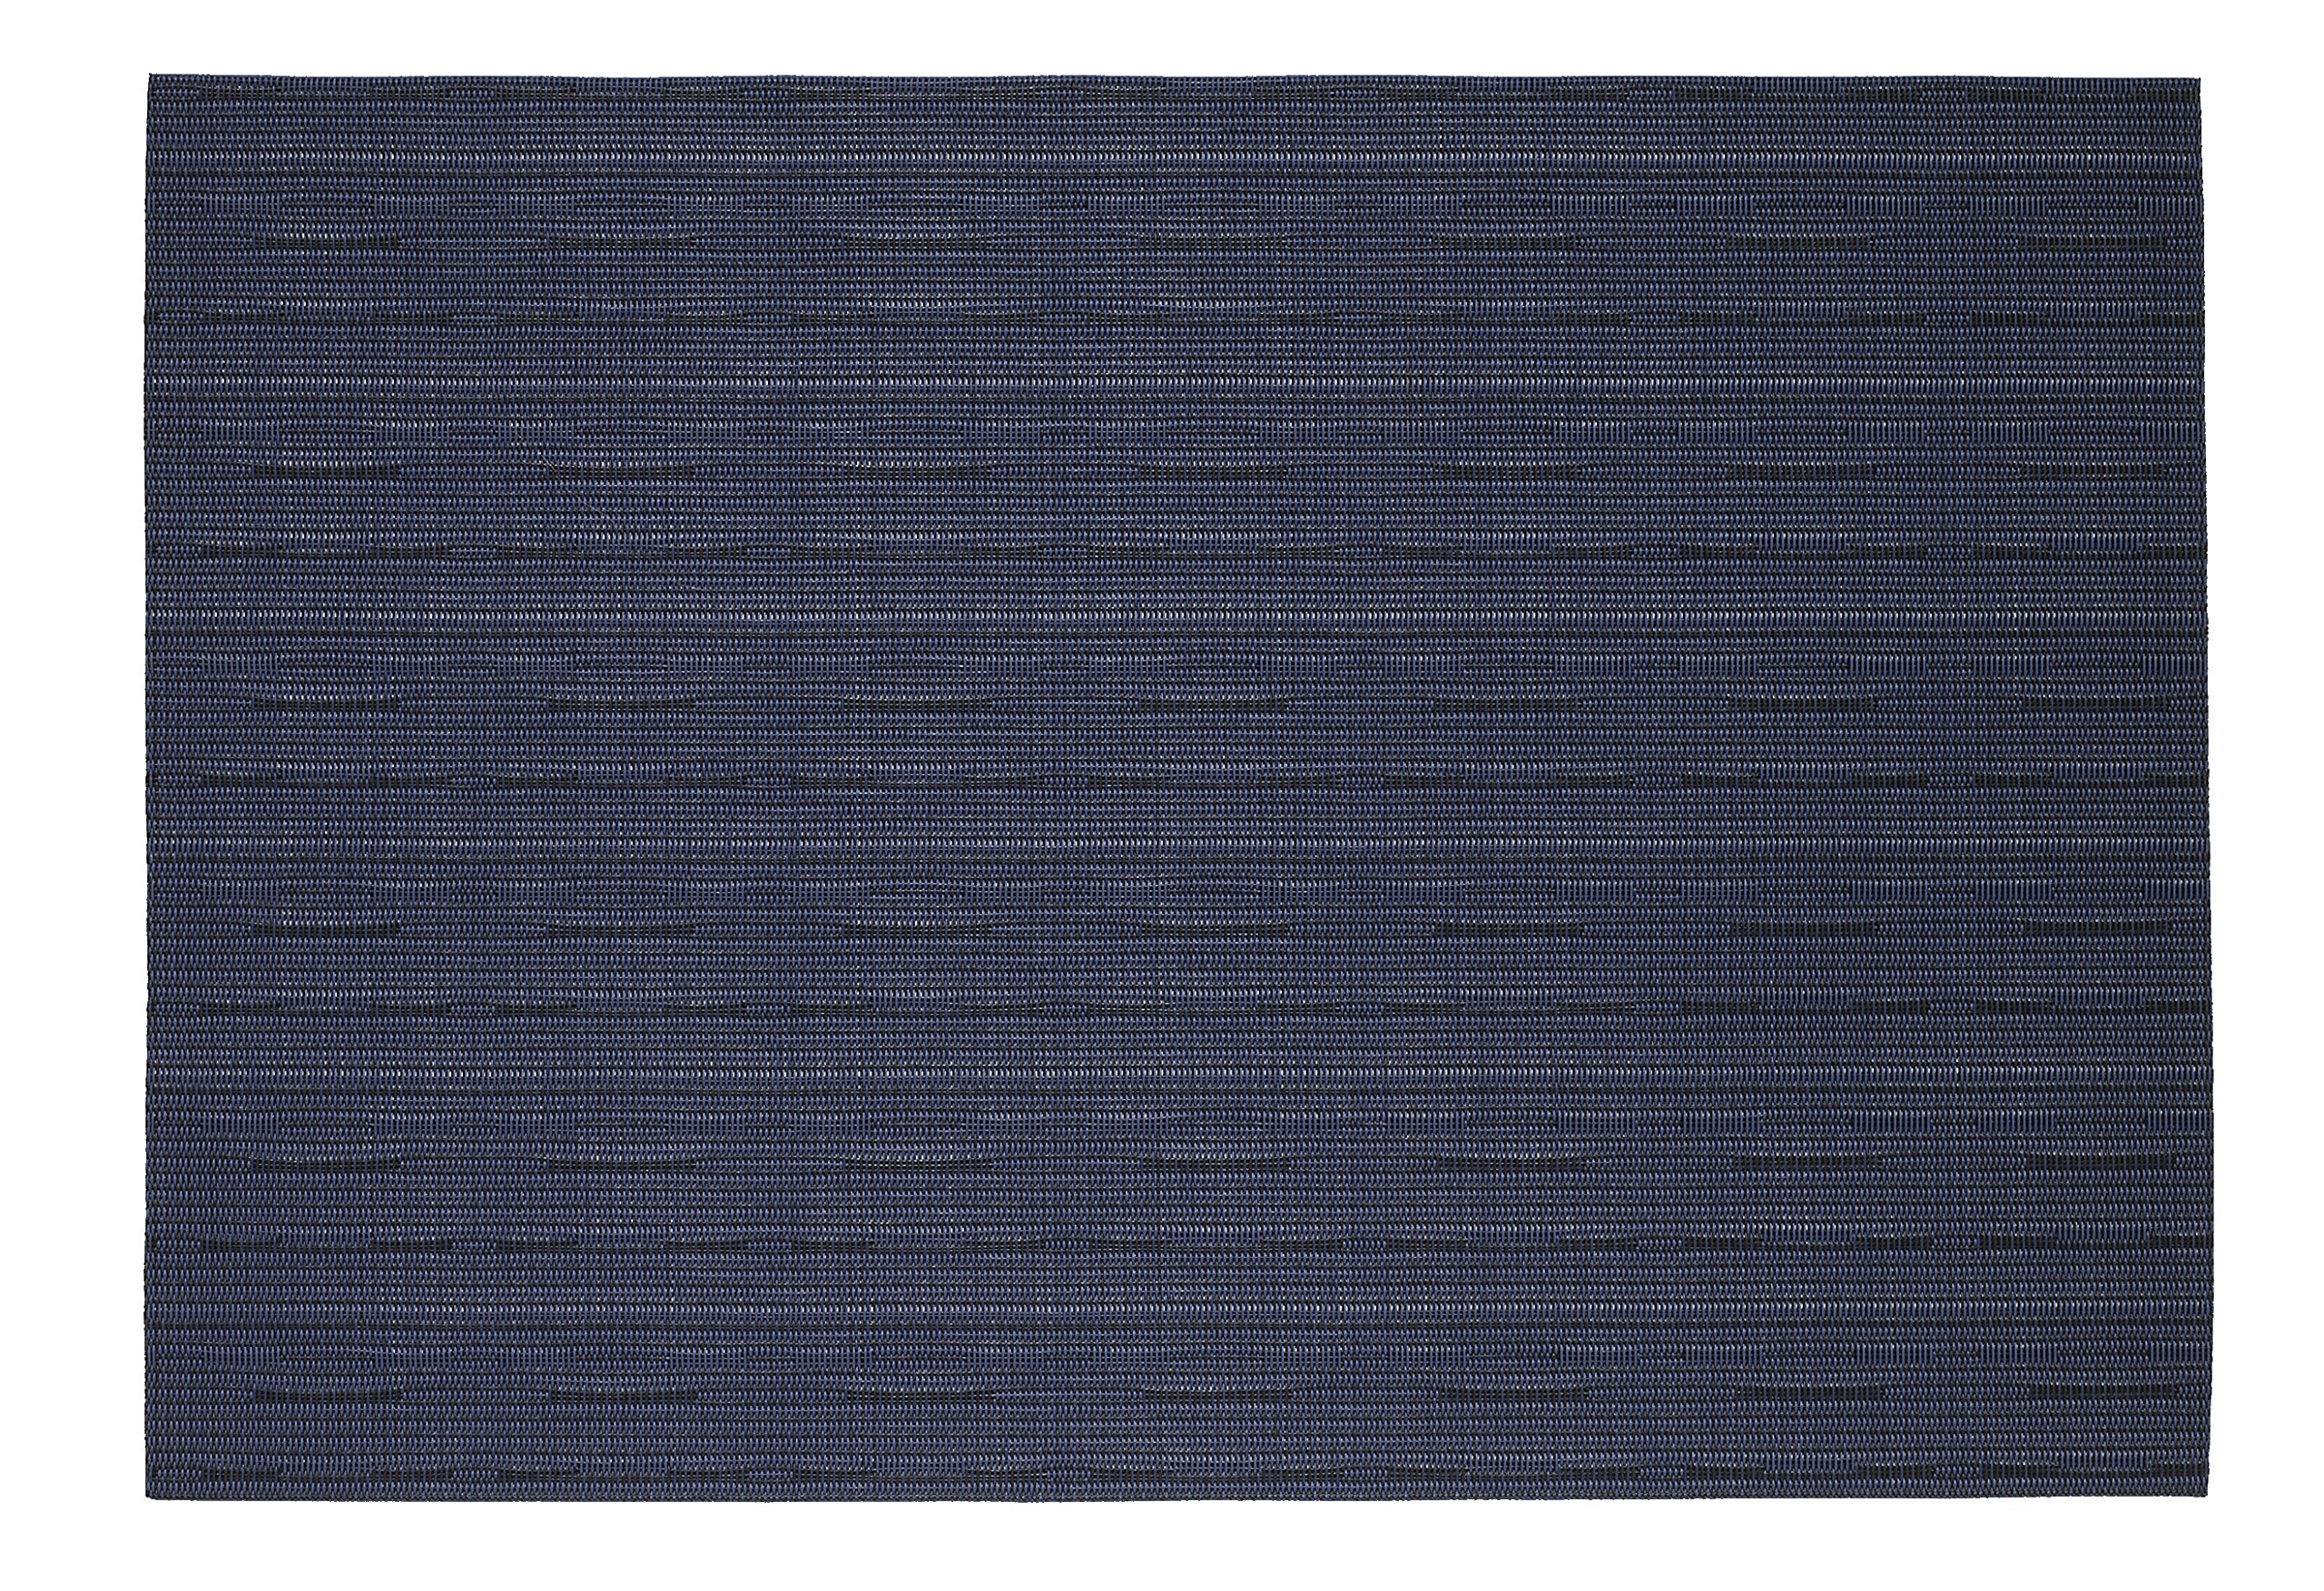 Ritz TechStyle Reversible Woven Grass Cloth Placemats, Blue, Set of 4 - Set of 4 grass cloth textured reversible placemats; blue color Made from easy to clean woven, PVC coated polyester: long lasting, durable, protects table. Features a natural grass cloth look in camel; great for indoor or outdoor dining - placemats, kitchen-dining-room-table-linens, kitchen-dining-room - A1deovBcUBL -